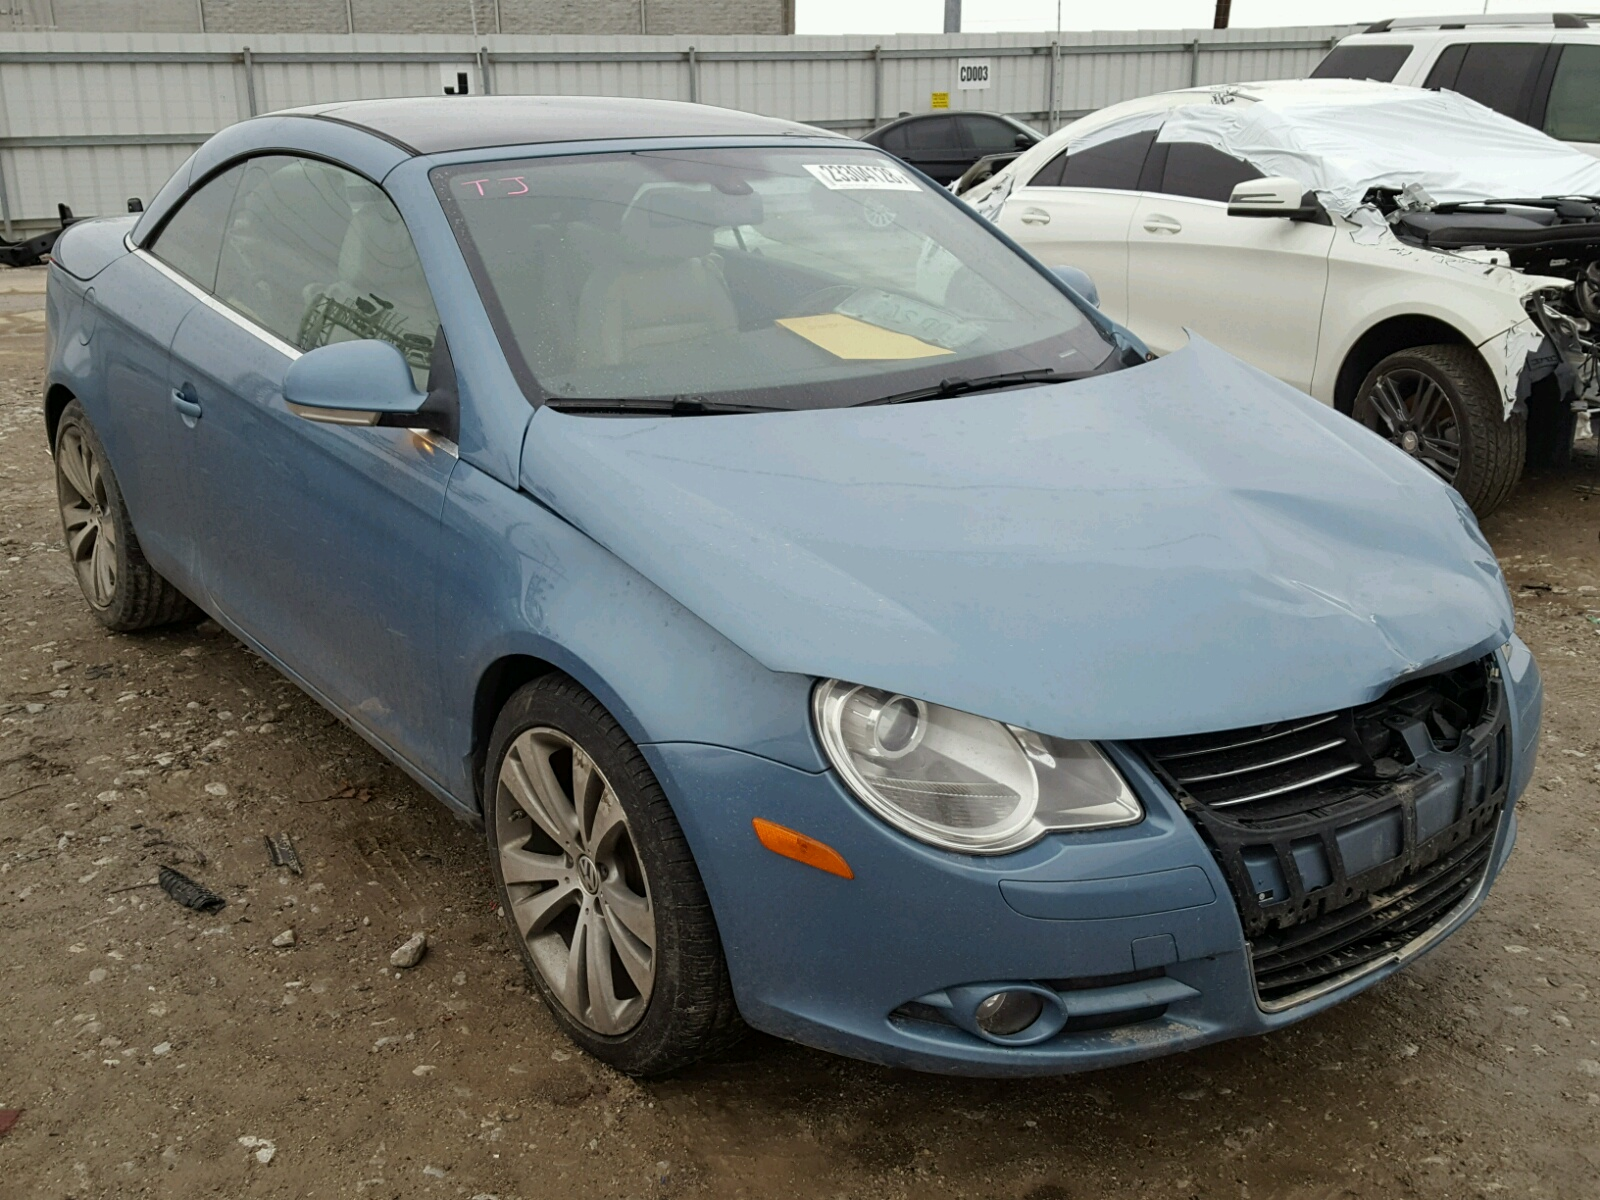 2008 Volkswagen Eos Vr6 3 2l For At Copart Auto